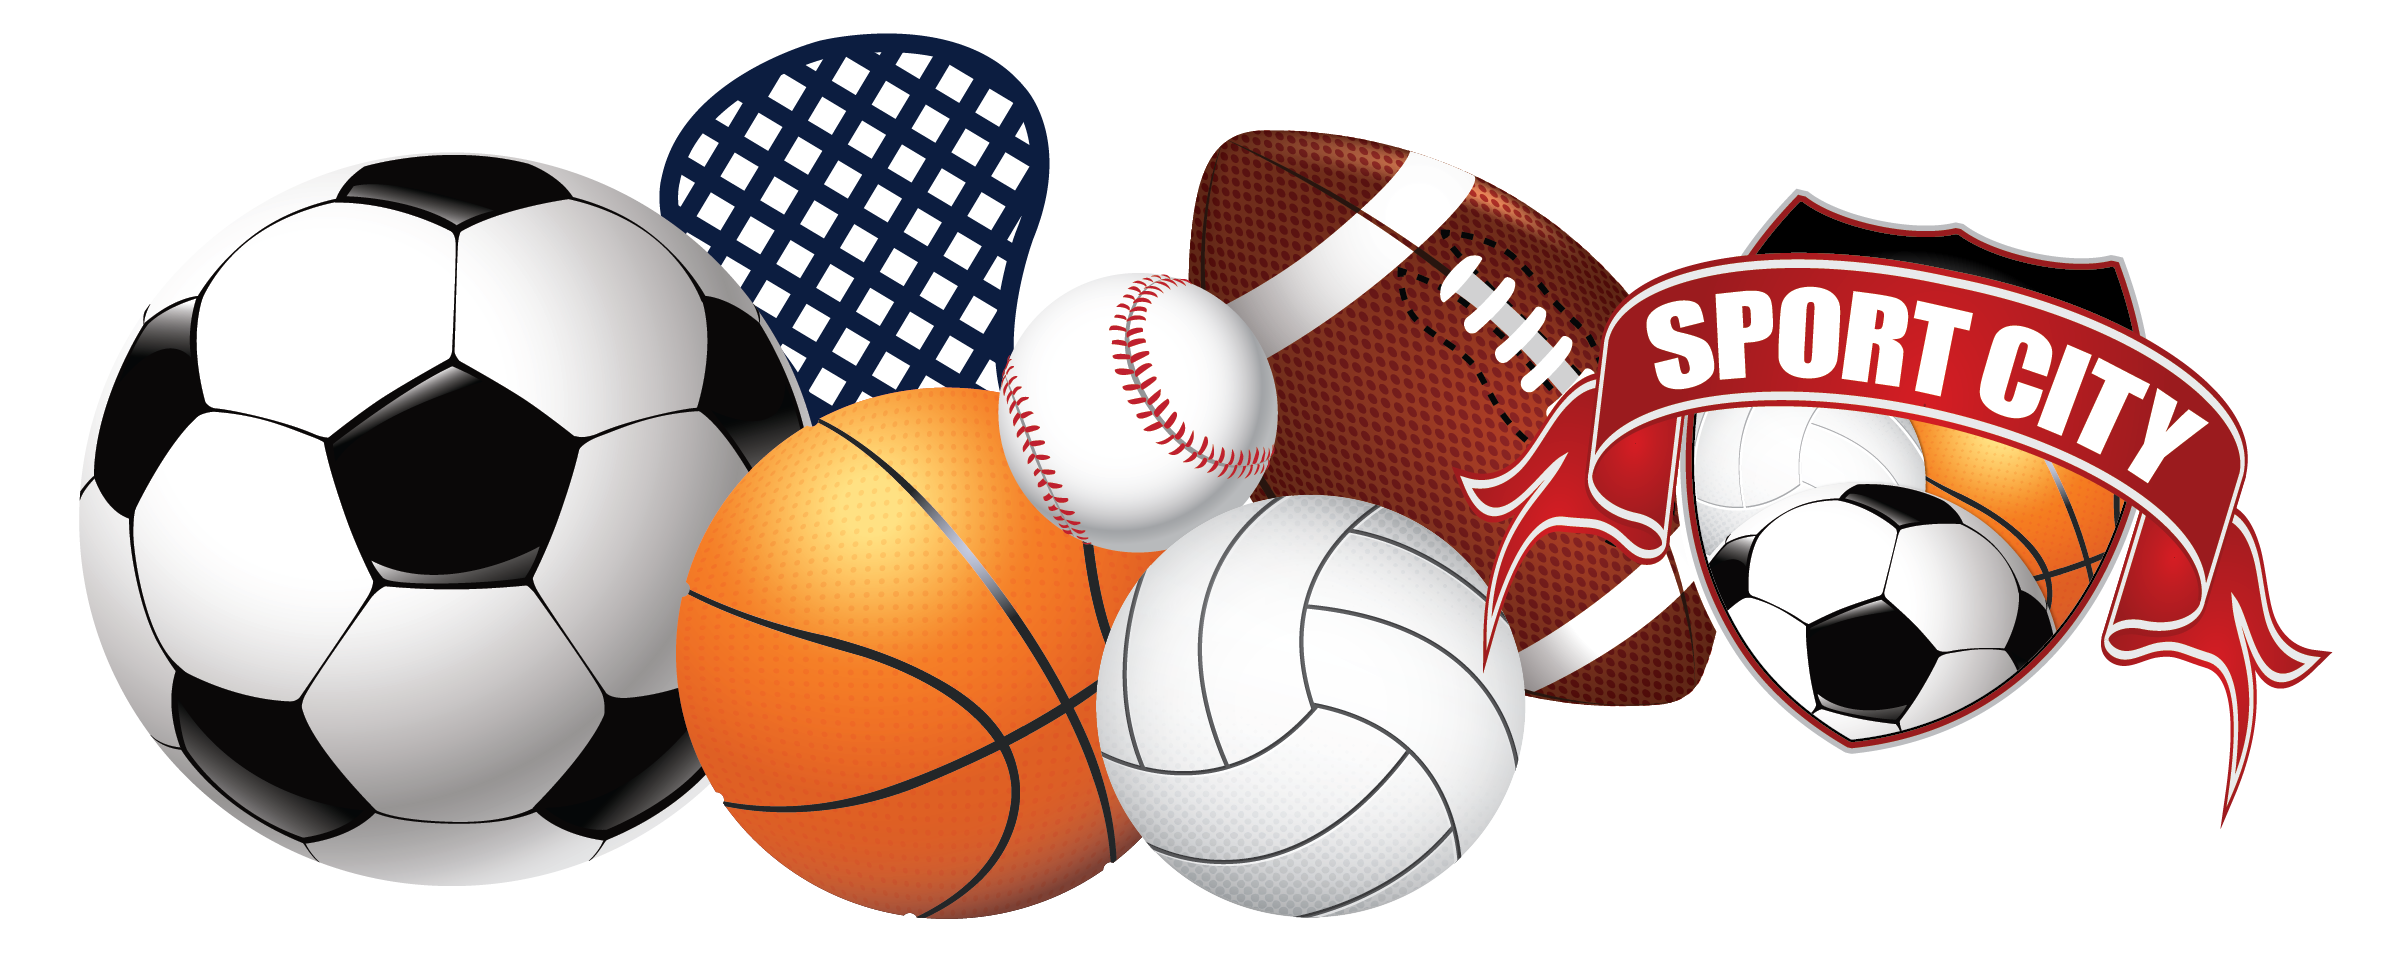 Summer new sport city. Basketball and volleyball clipart